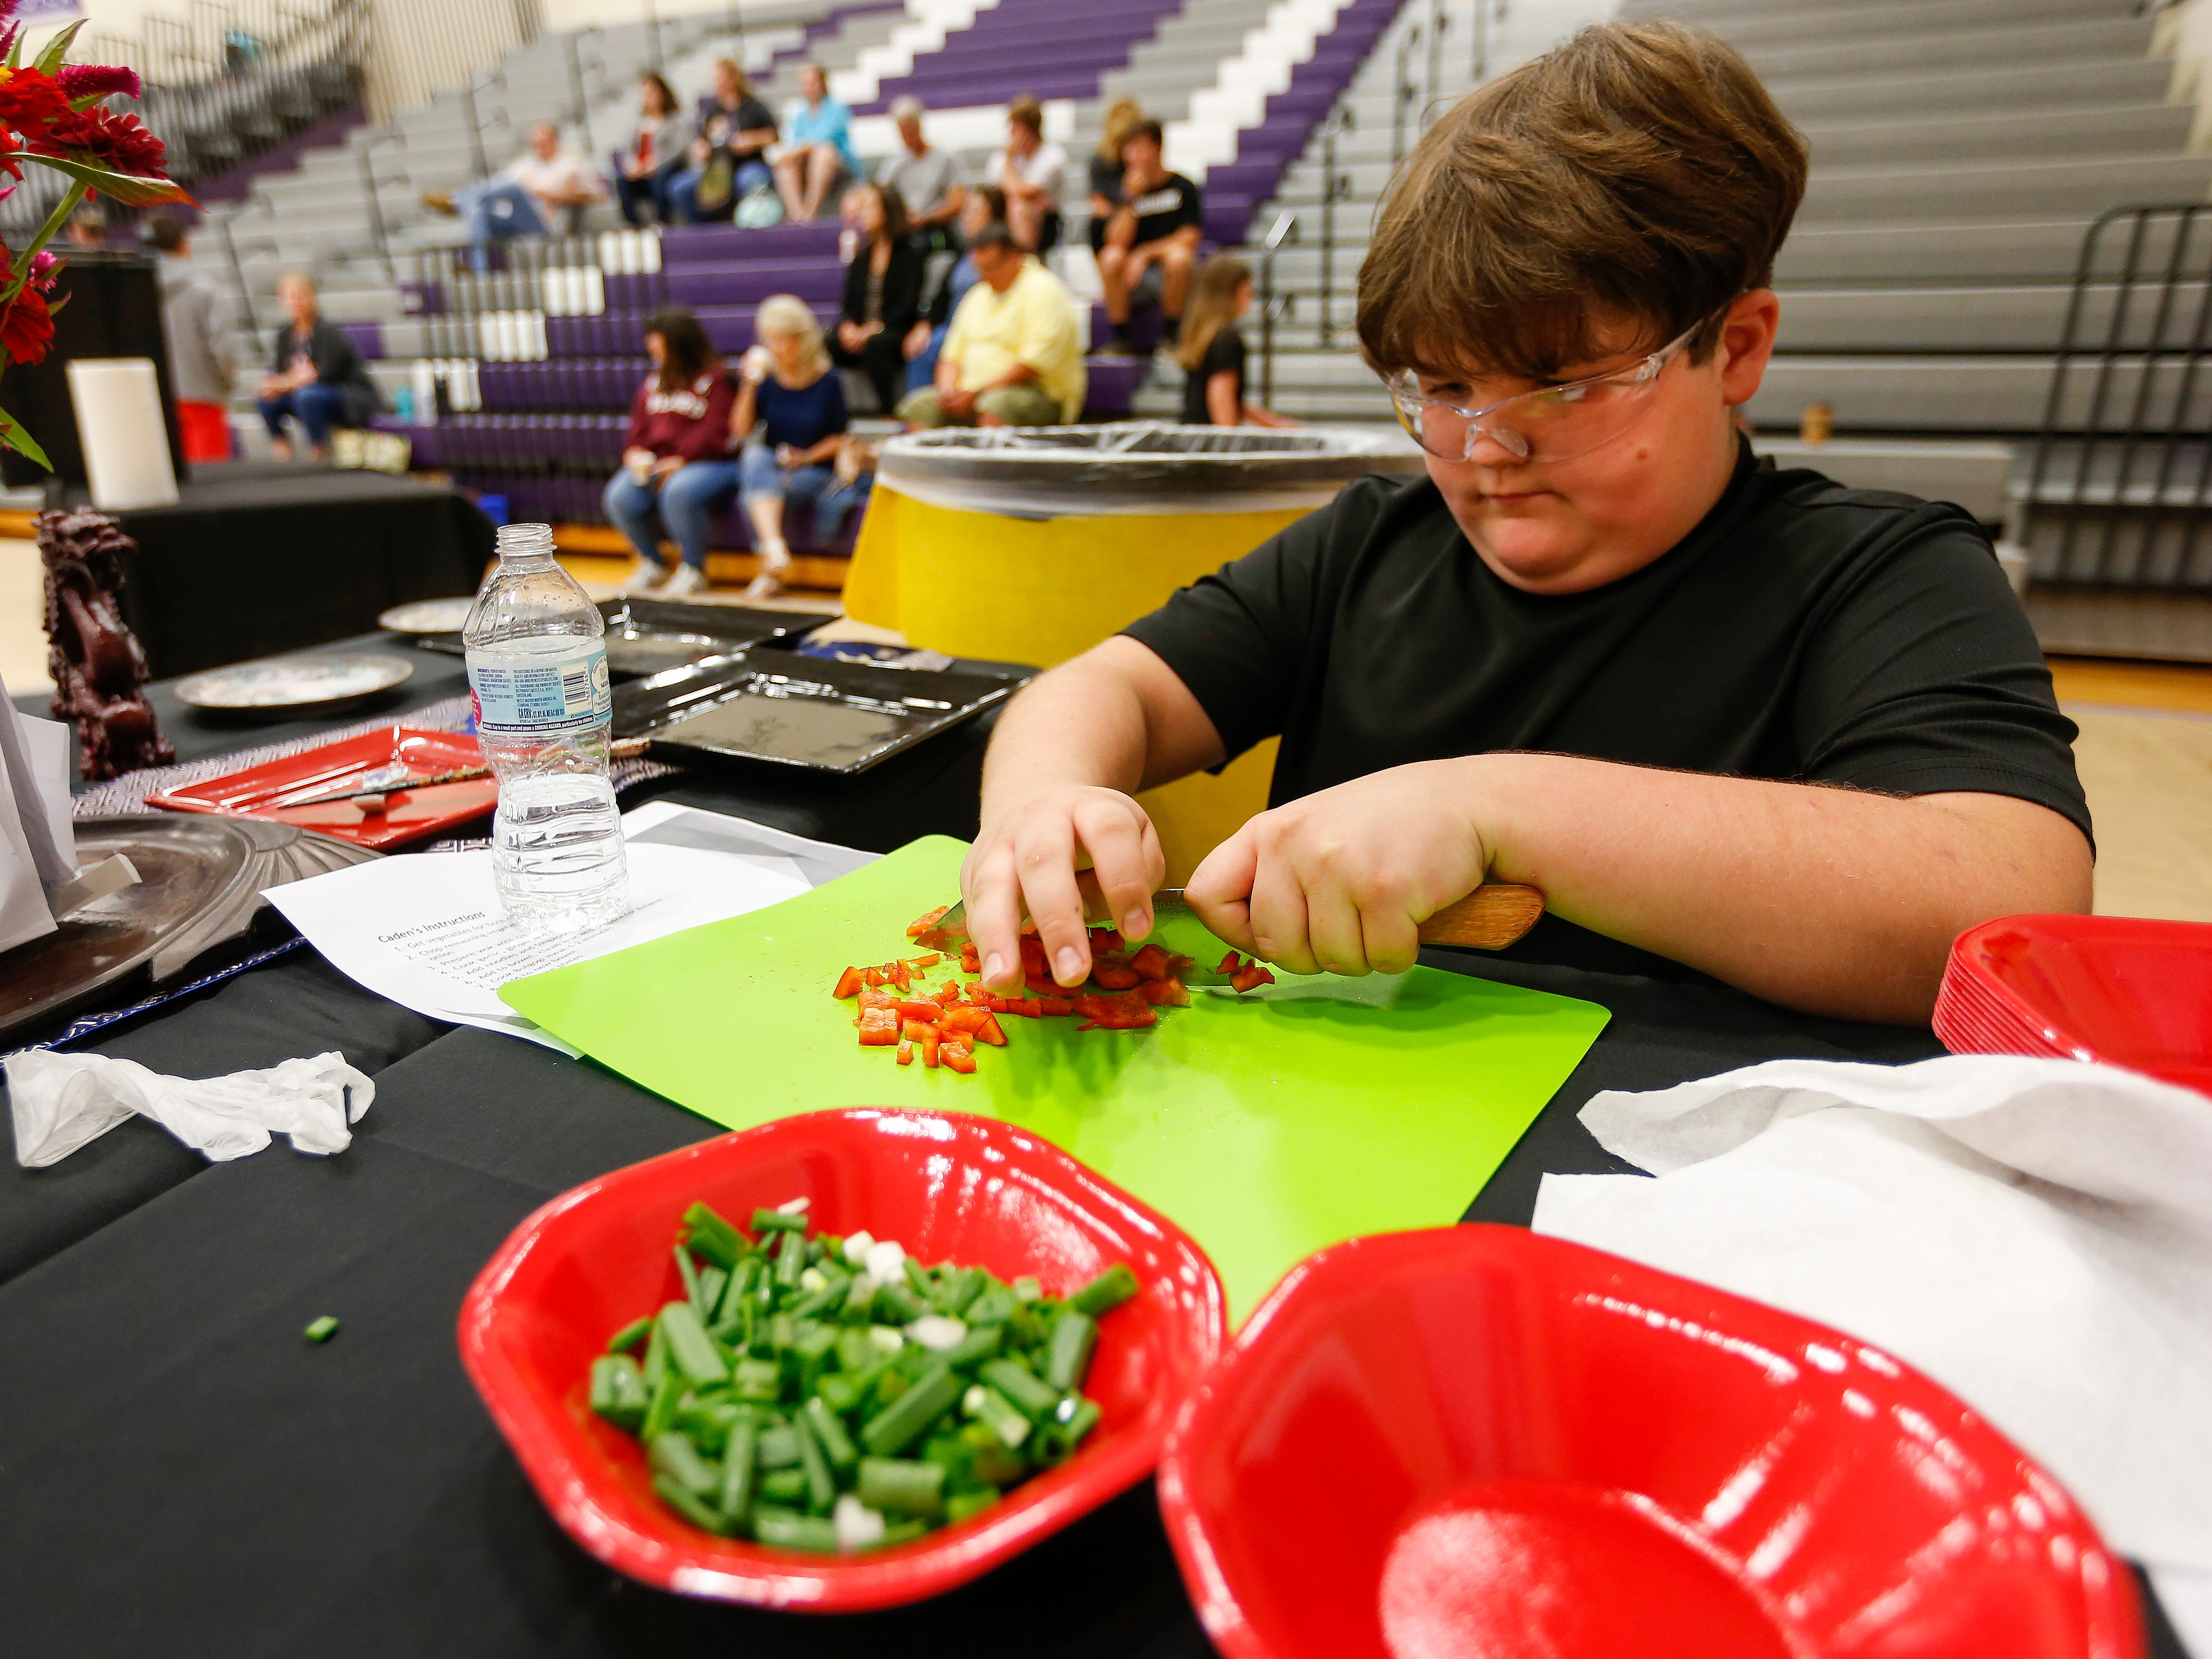 Caden McGeorge, a student at Hickory Hills Middle School, dices peppers during the third annual Junior Chef Competition at Hickory Hills on Saturday, Sept. 29, 2018.